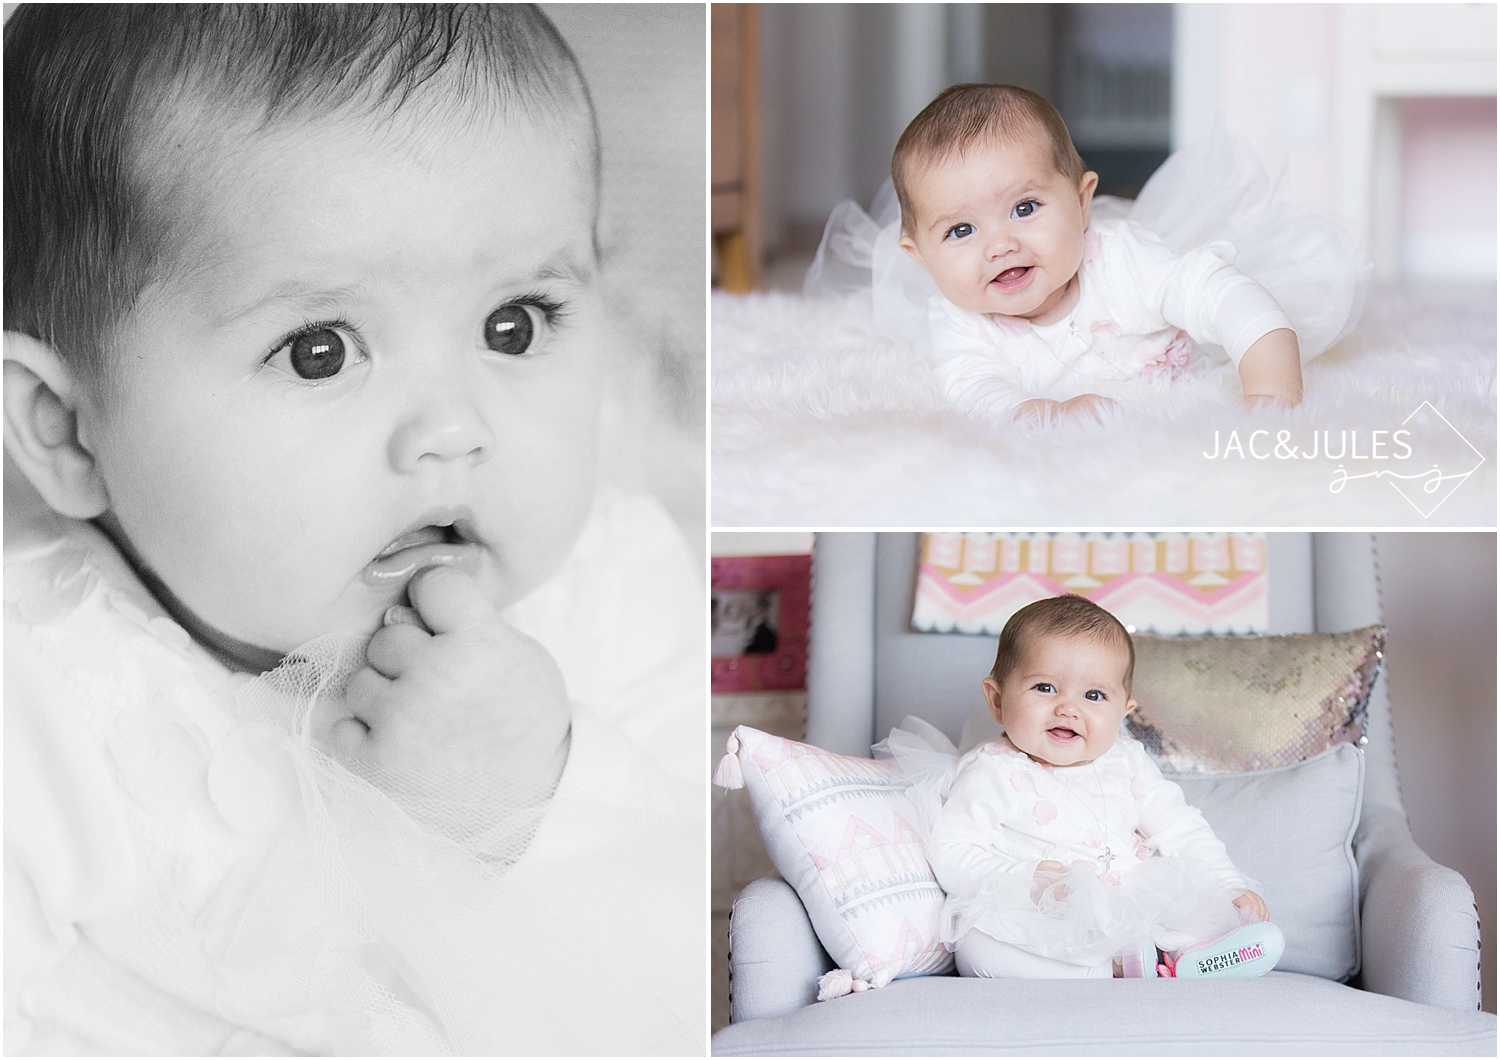 jacnjules photographs a baby girl at her home in Irvington, NY